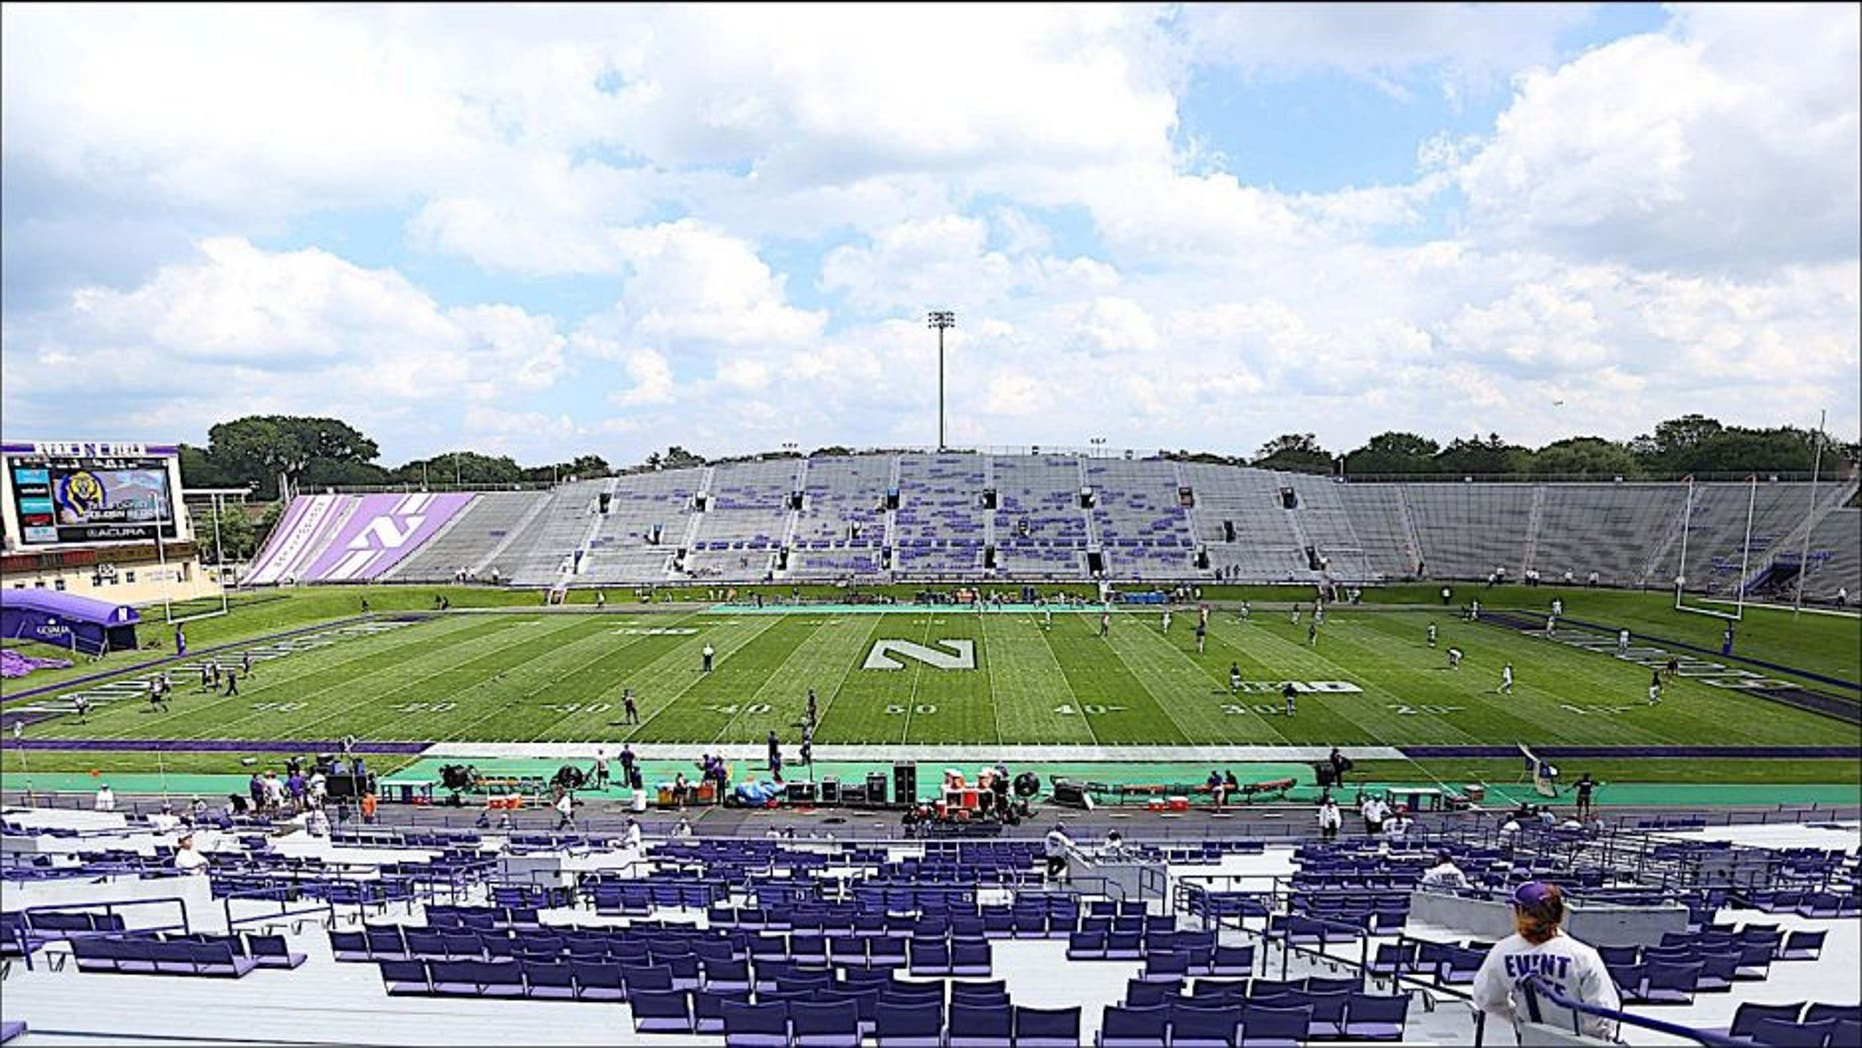 Aug 30, 2014; Evanston, IL, USA; A general view of Ryan Field prior to a game between the Northwestern Wildcats and the California Golden Bears. Mandatory Credit: Dennis Wierzbicki-USA TODAY Sports